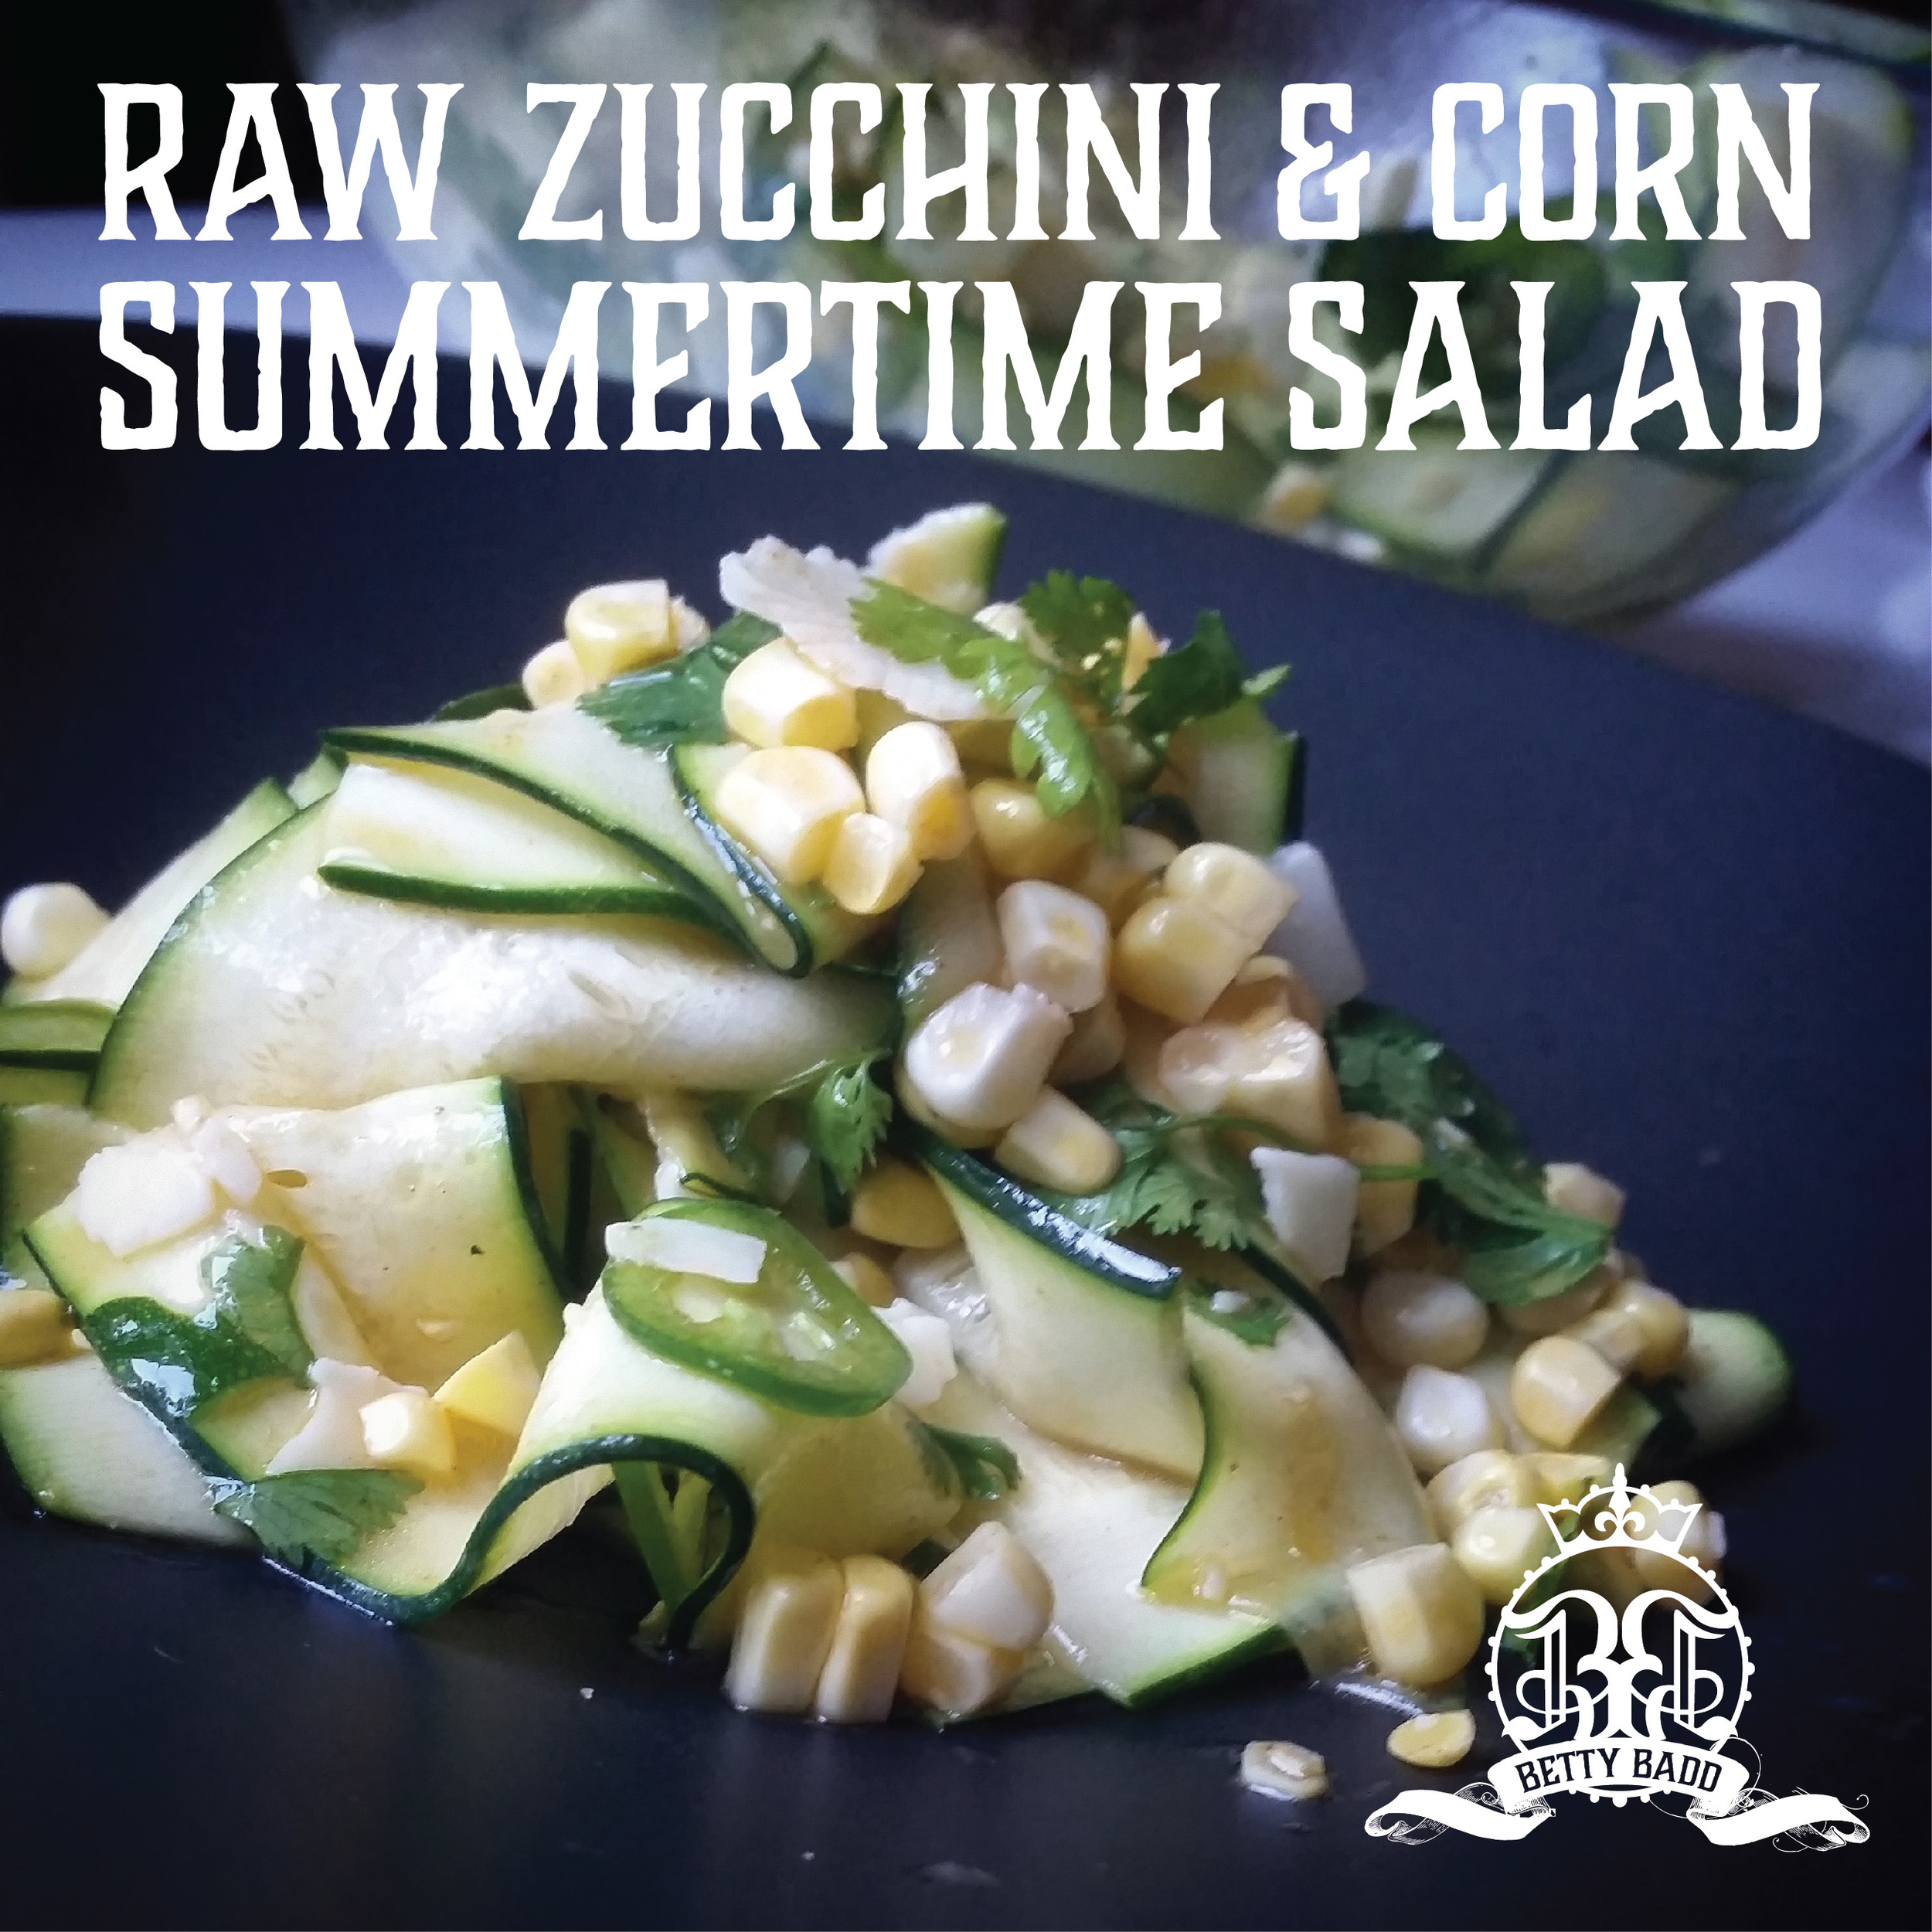 A simple and delicious summertime salad of raw zucchini and corn.